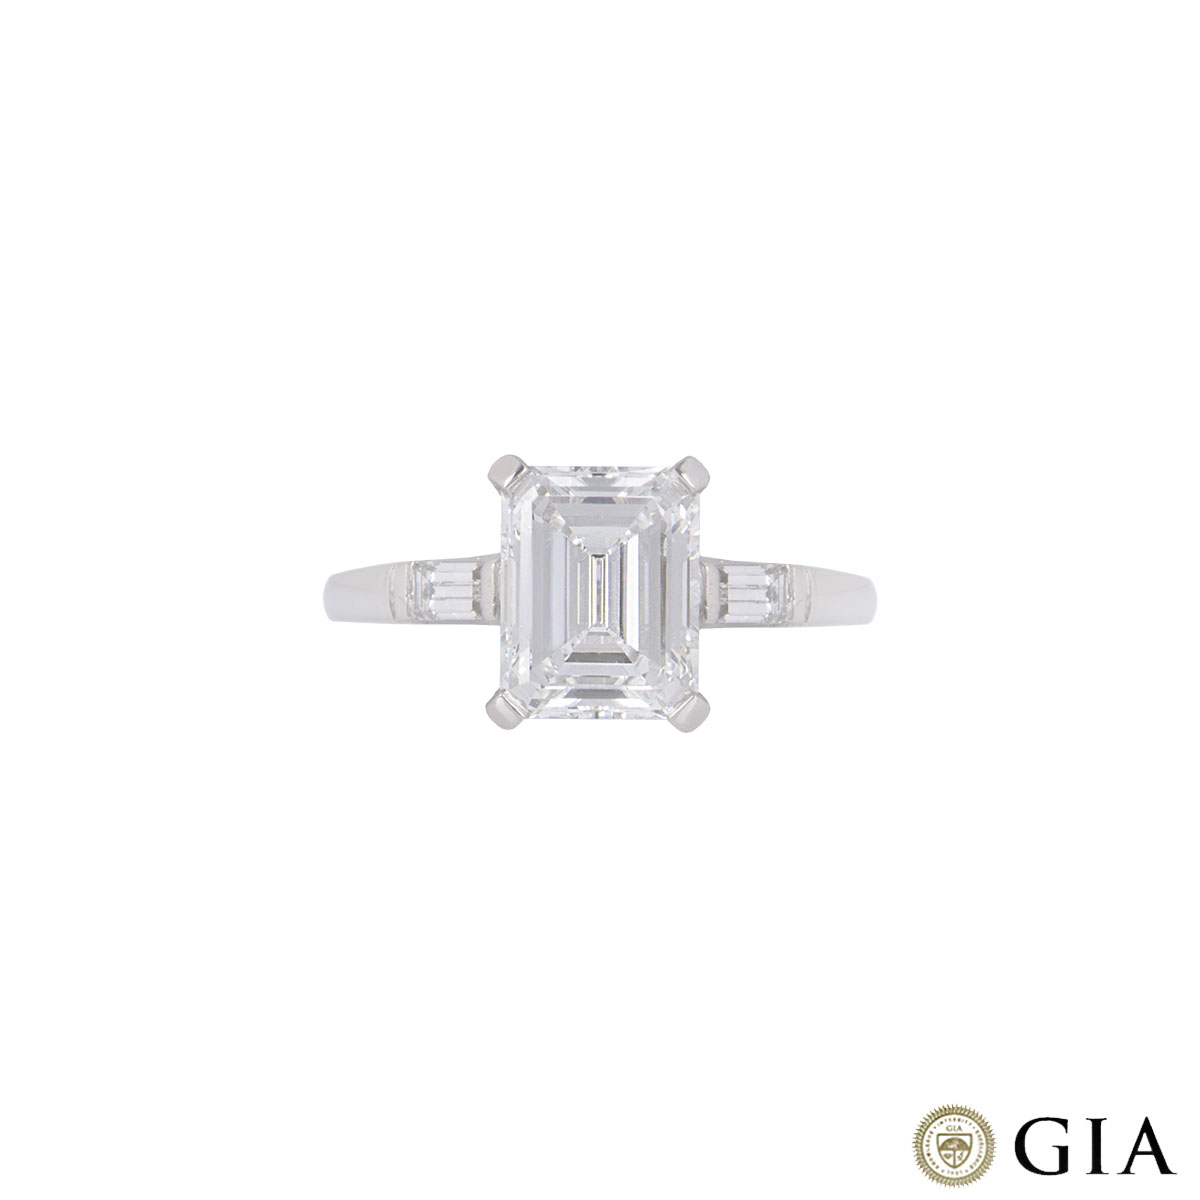 Platinum Emerald Cut Diamond Ring 1.92ct F/VVS2